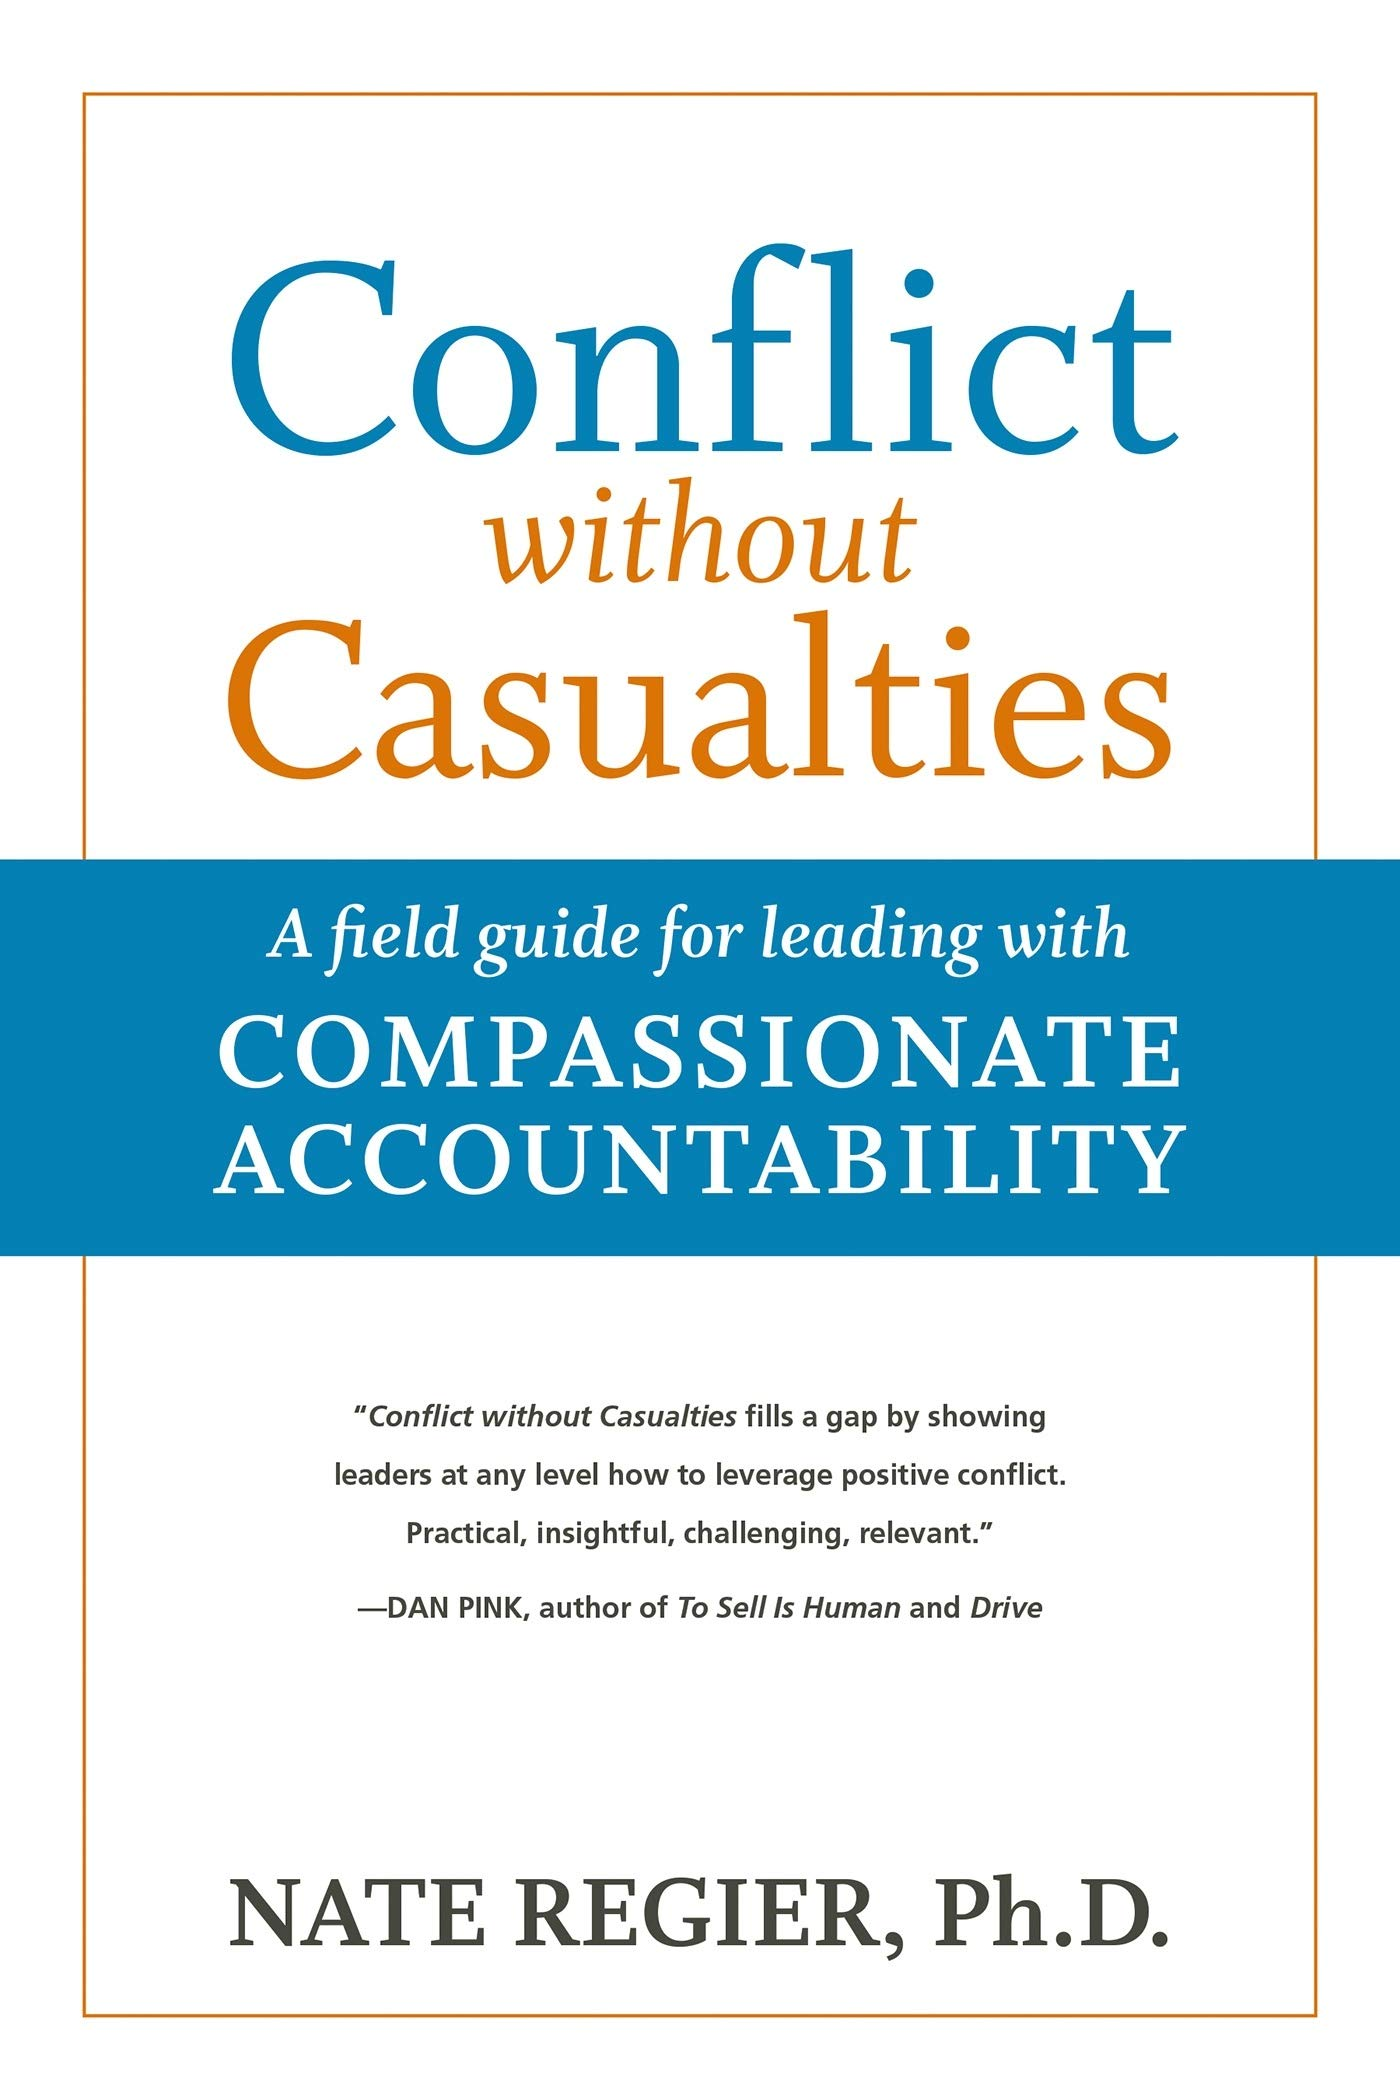 Conflict without Casualties: A Field Guide for Leading with Compassionate Accountability